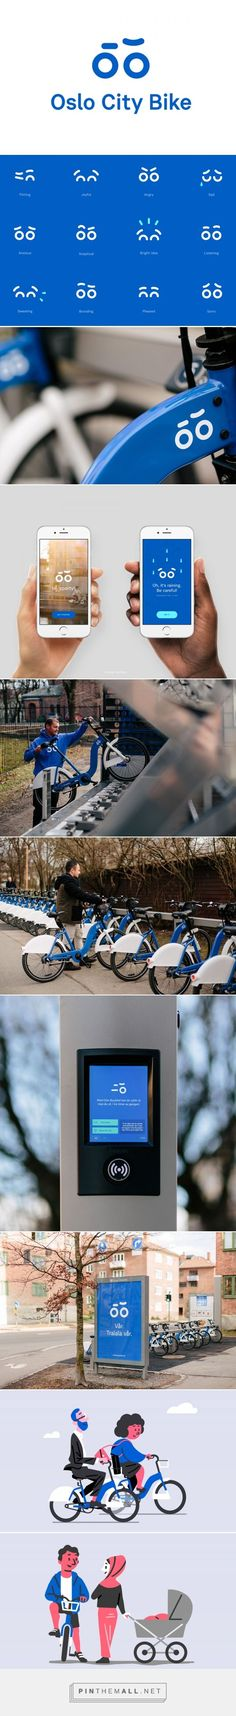 Las bicicletas públicas de Oslo estrenan imagen corporativa | Brandemia_... - a grouped images picture - Pin Them All. If you like UX, design, or design thinking, check out theuxblog.com